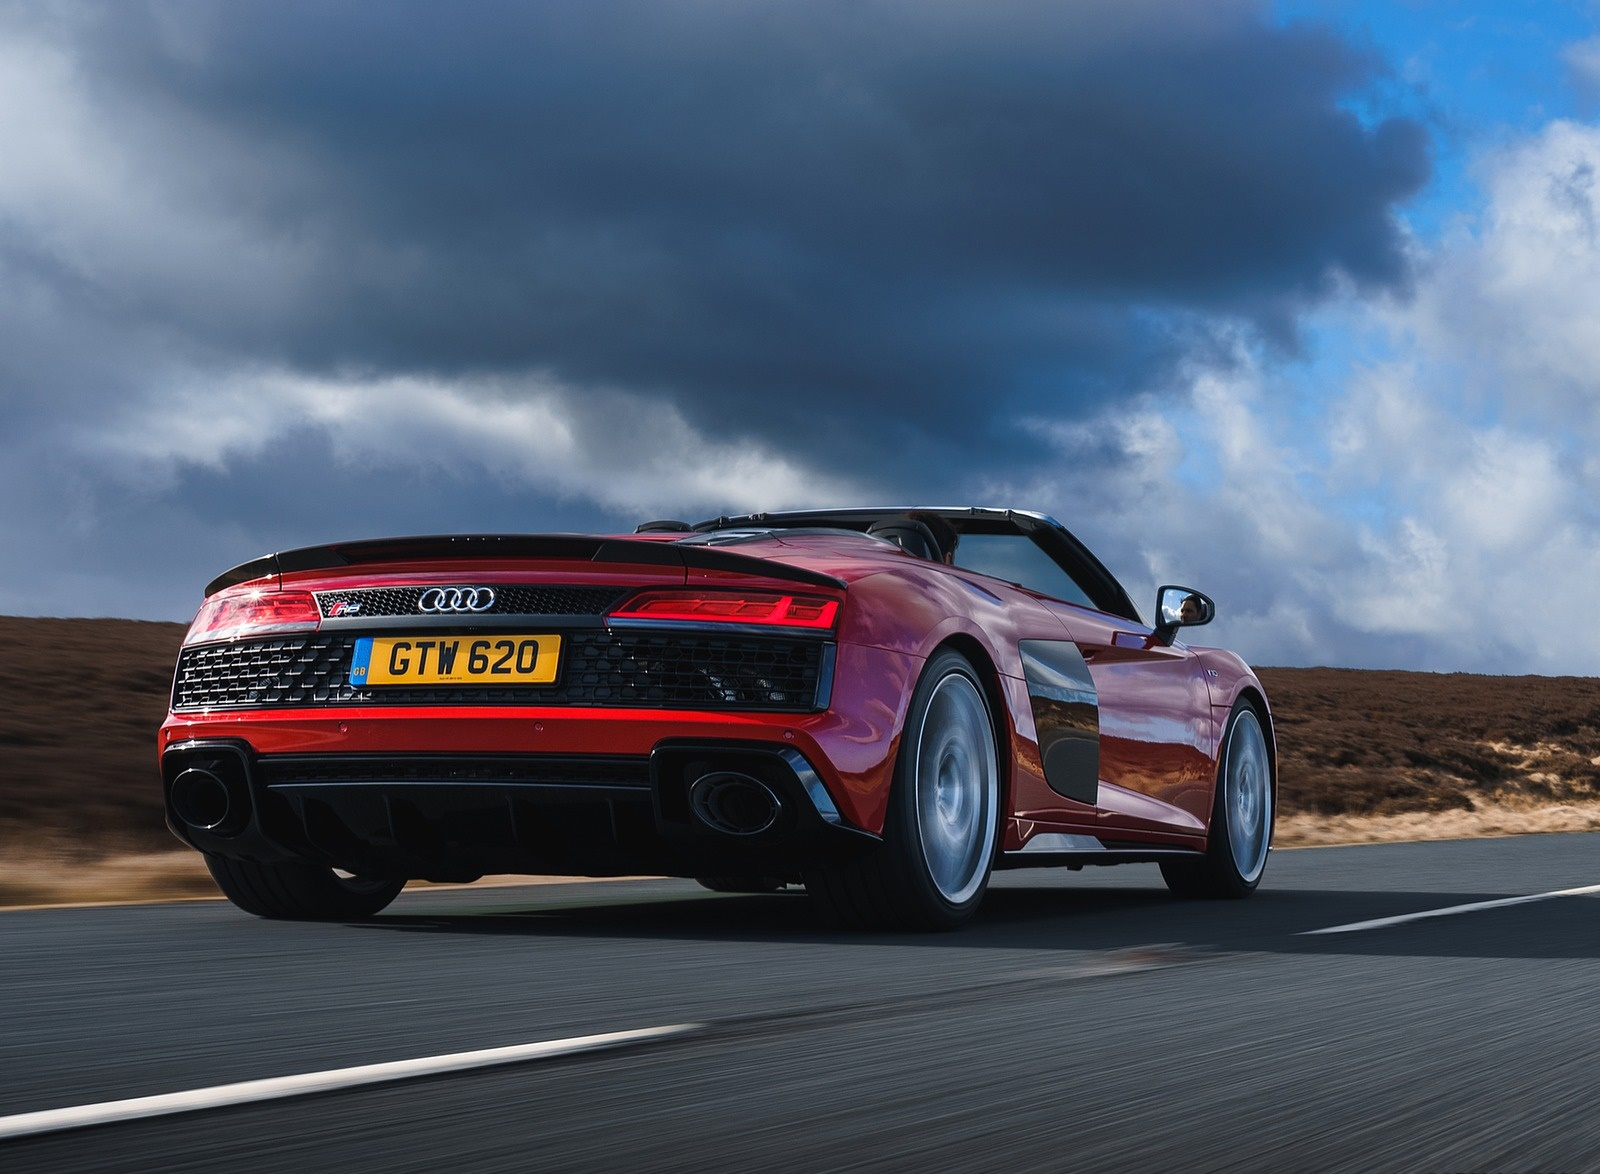 2019 Audi R8 V10 Spyder Performance quattro (UK-Spec) Rear Three-Quarter Wallpapers (8)